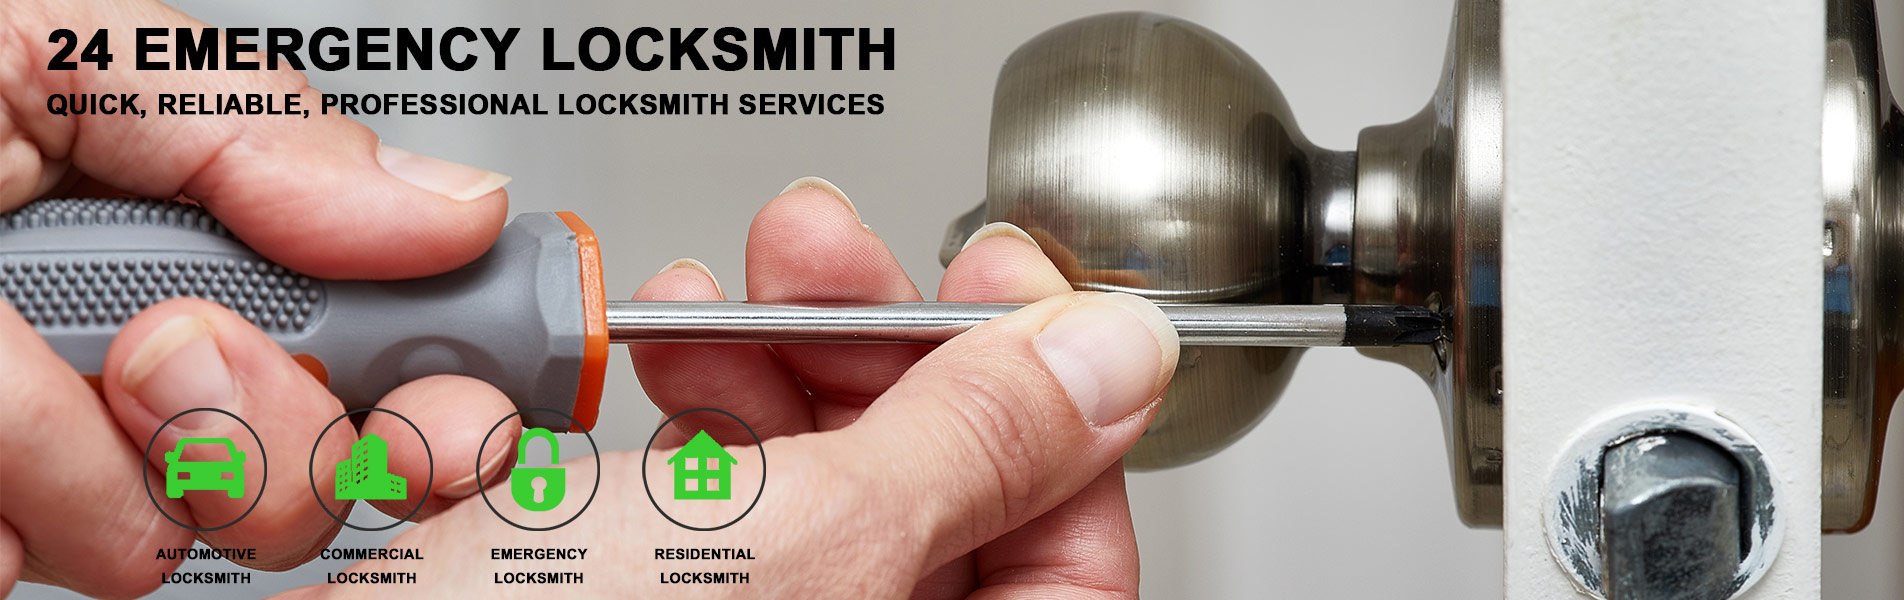 Expert Locksmith Services West Columbia, SC 803-486-2002